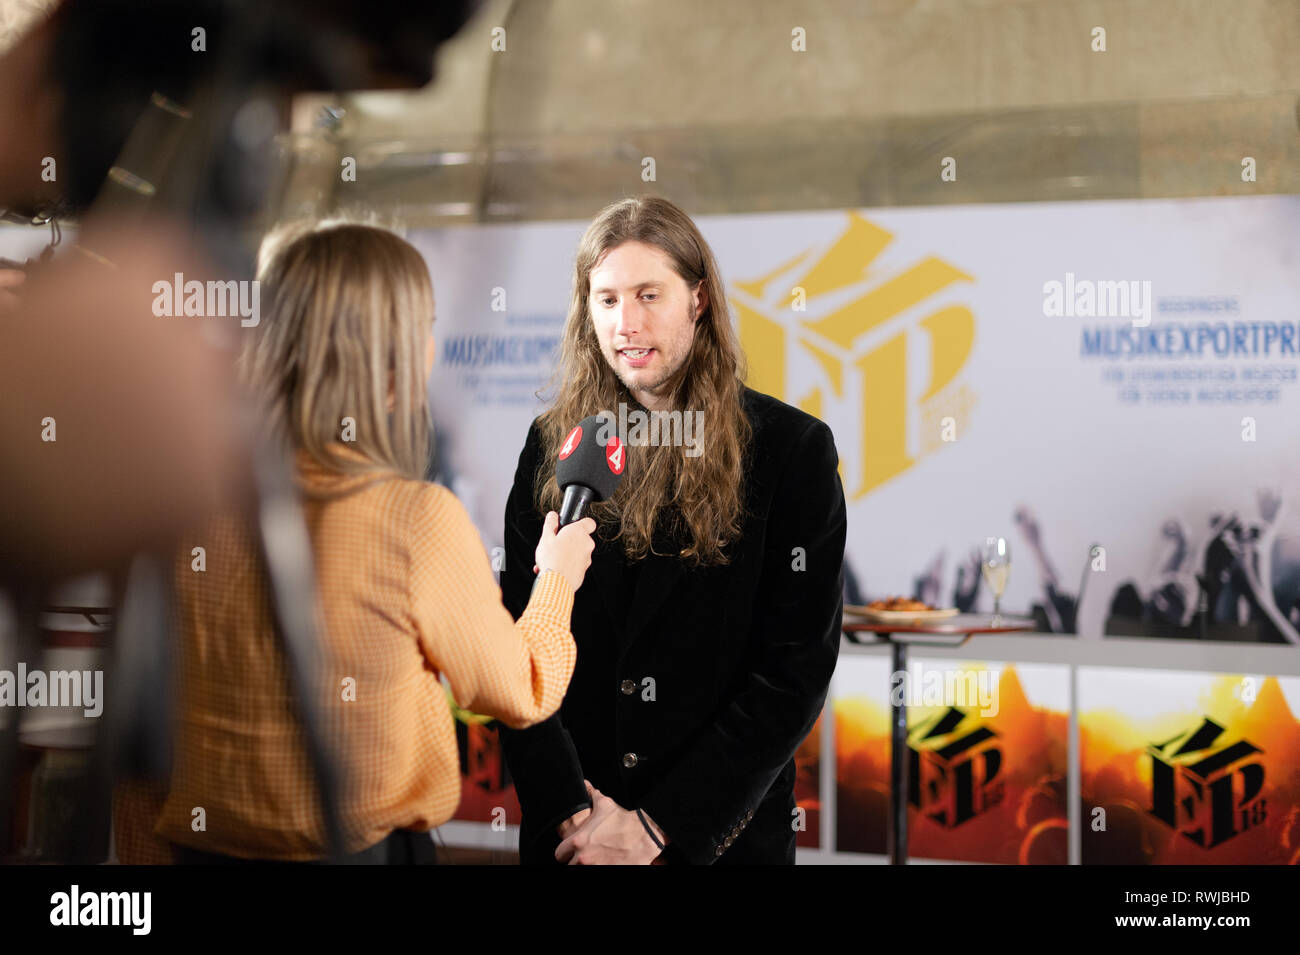 Stockholm, Sweden, March 6, 2019. Grammy-winning Ludwig Goransson receives the Swedish Government's Music Export Prize 2018. The government's Music Export Prize this year goes to the Swedish composer, conductor, and record producer Ludwig Goransson. The prize is awarded every year to someone in the music industry who during the past year has drawn attention to Sweden, and thereby contributed to Swedish exports. Credit: Barbro Bergfeldt/Alamy Live News Stock Photo